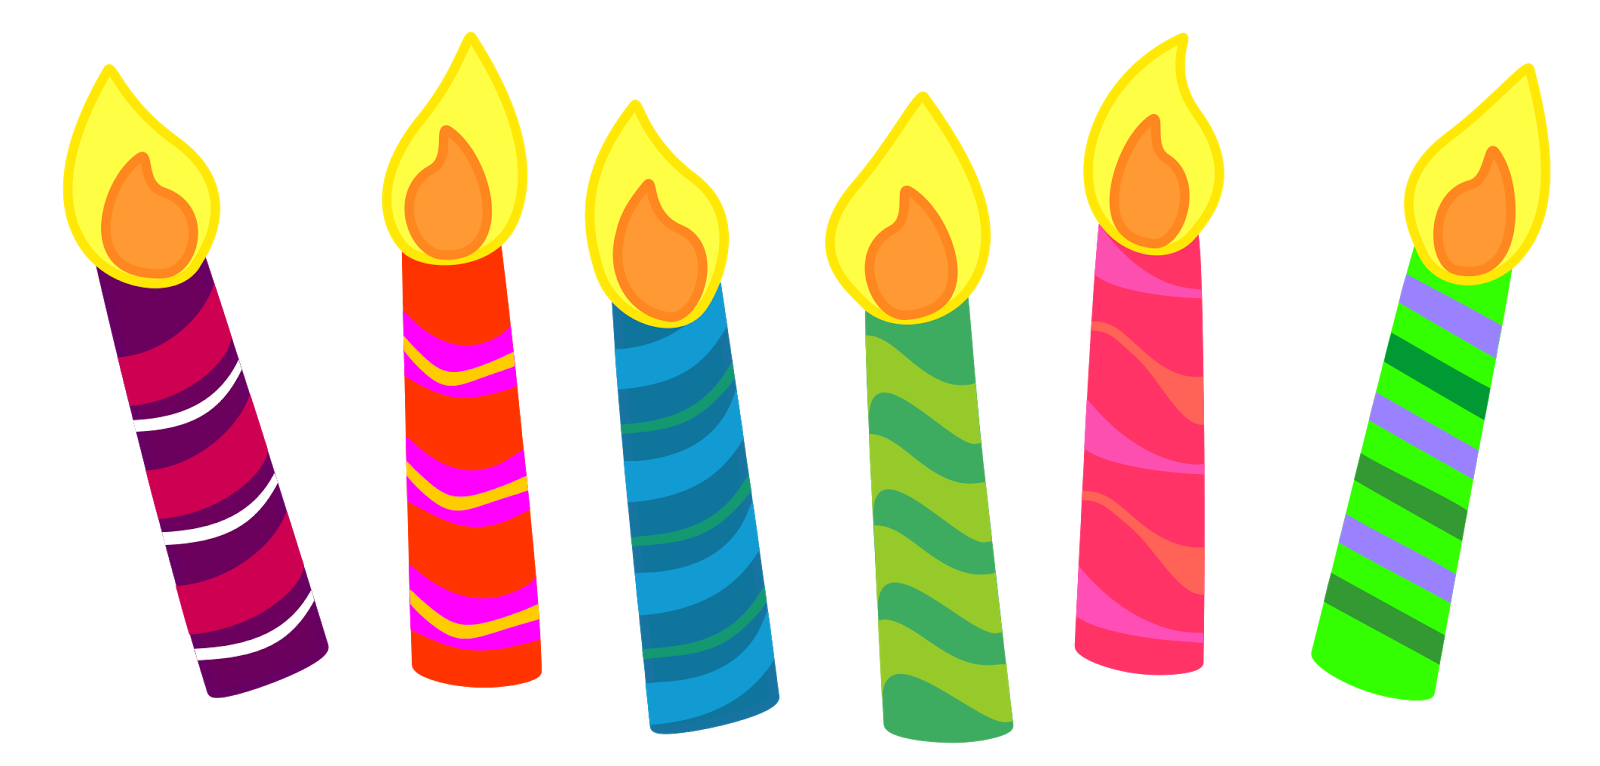 candle clipart for your projects or classroom free png files that rh pinterest com birthday candles clip art free birthday candle clipart images free